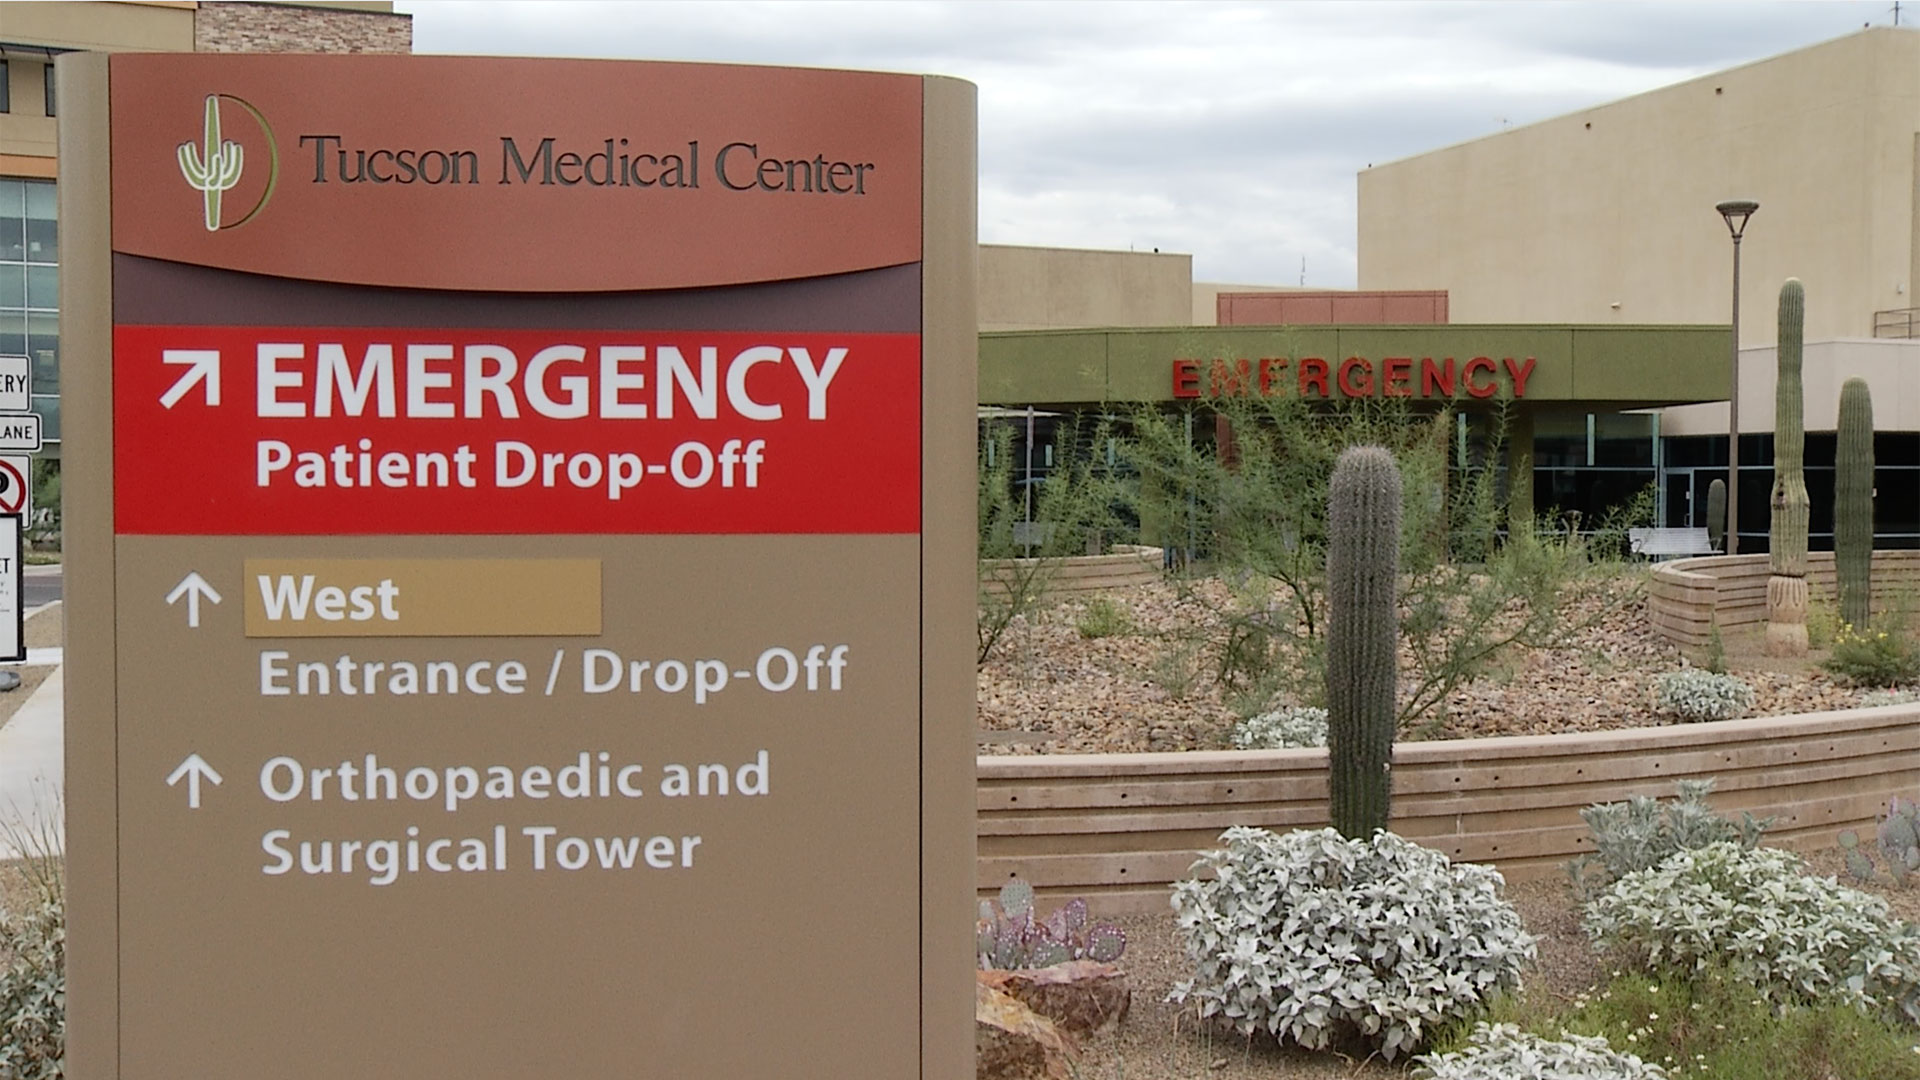 A sign in front of the Tucson Medical Center.